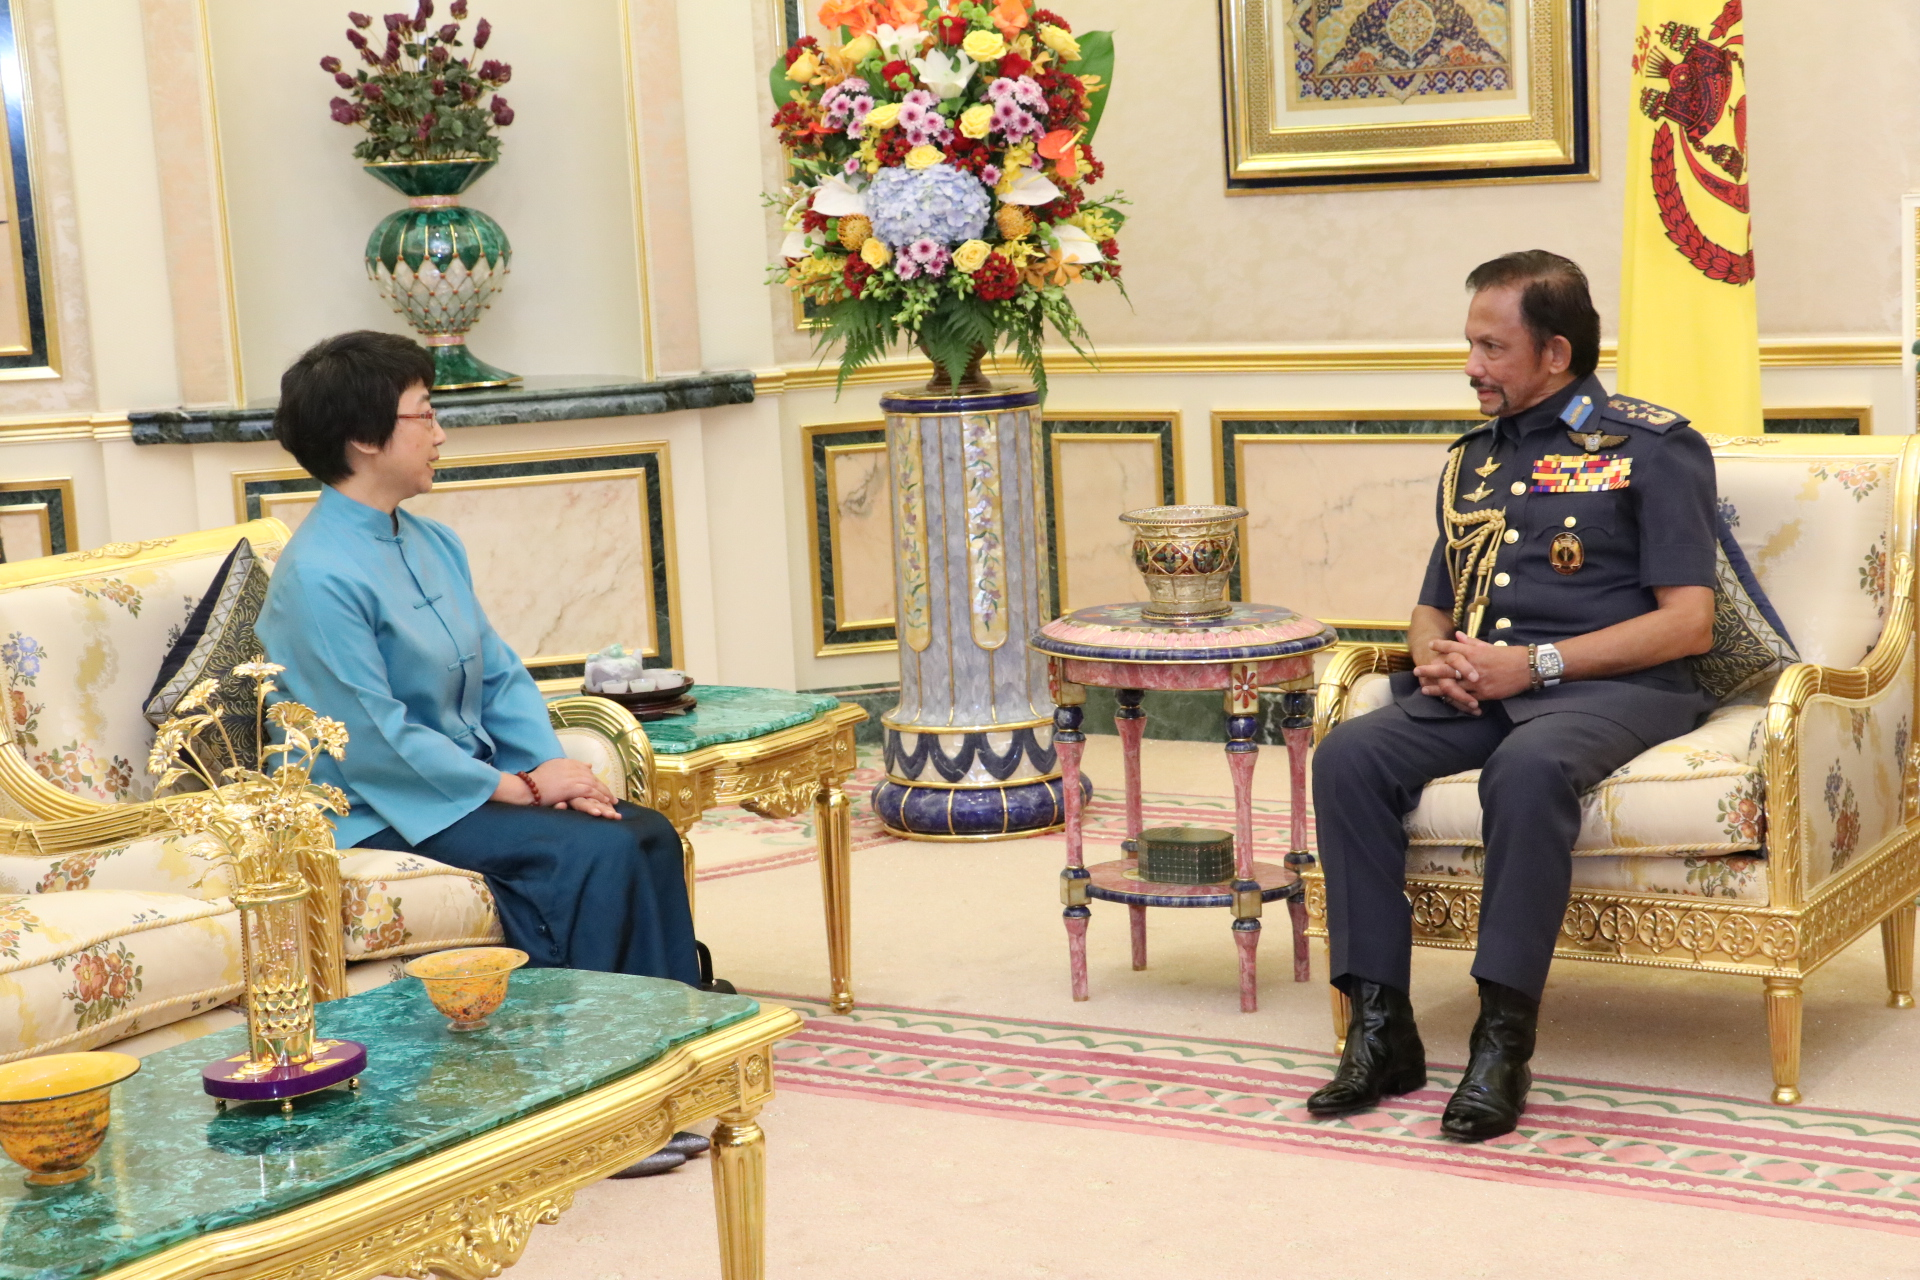 HIS MAJESTY THE SULTAN AND YANG DI-PERTUAN OF BRUNEI DARUSSALAM RECEIVES IN AUDIENCE THE OUTGOING AMBASSADOR EXTRAORDINARY AND PLENIPOTENTIARY OF THE PEOPLE'S REPUBLIC OF CHINA TO BRUNEI DARUSSALAM